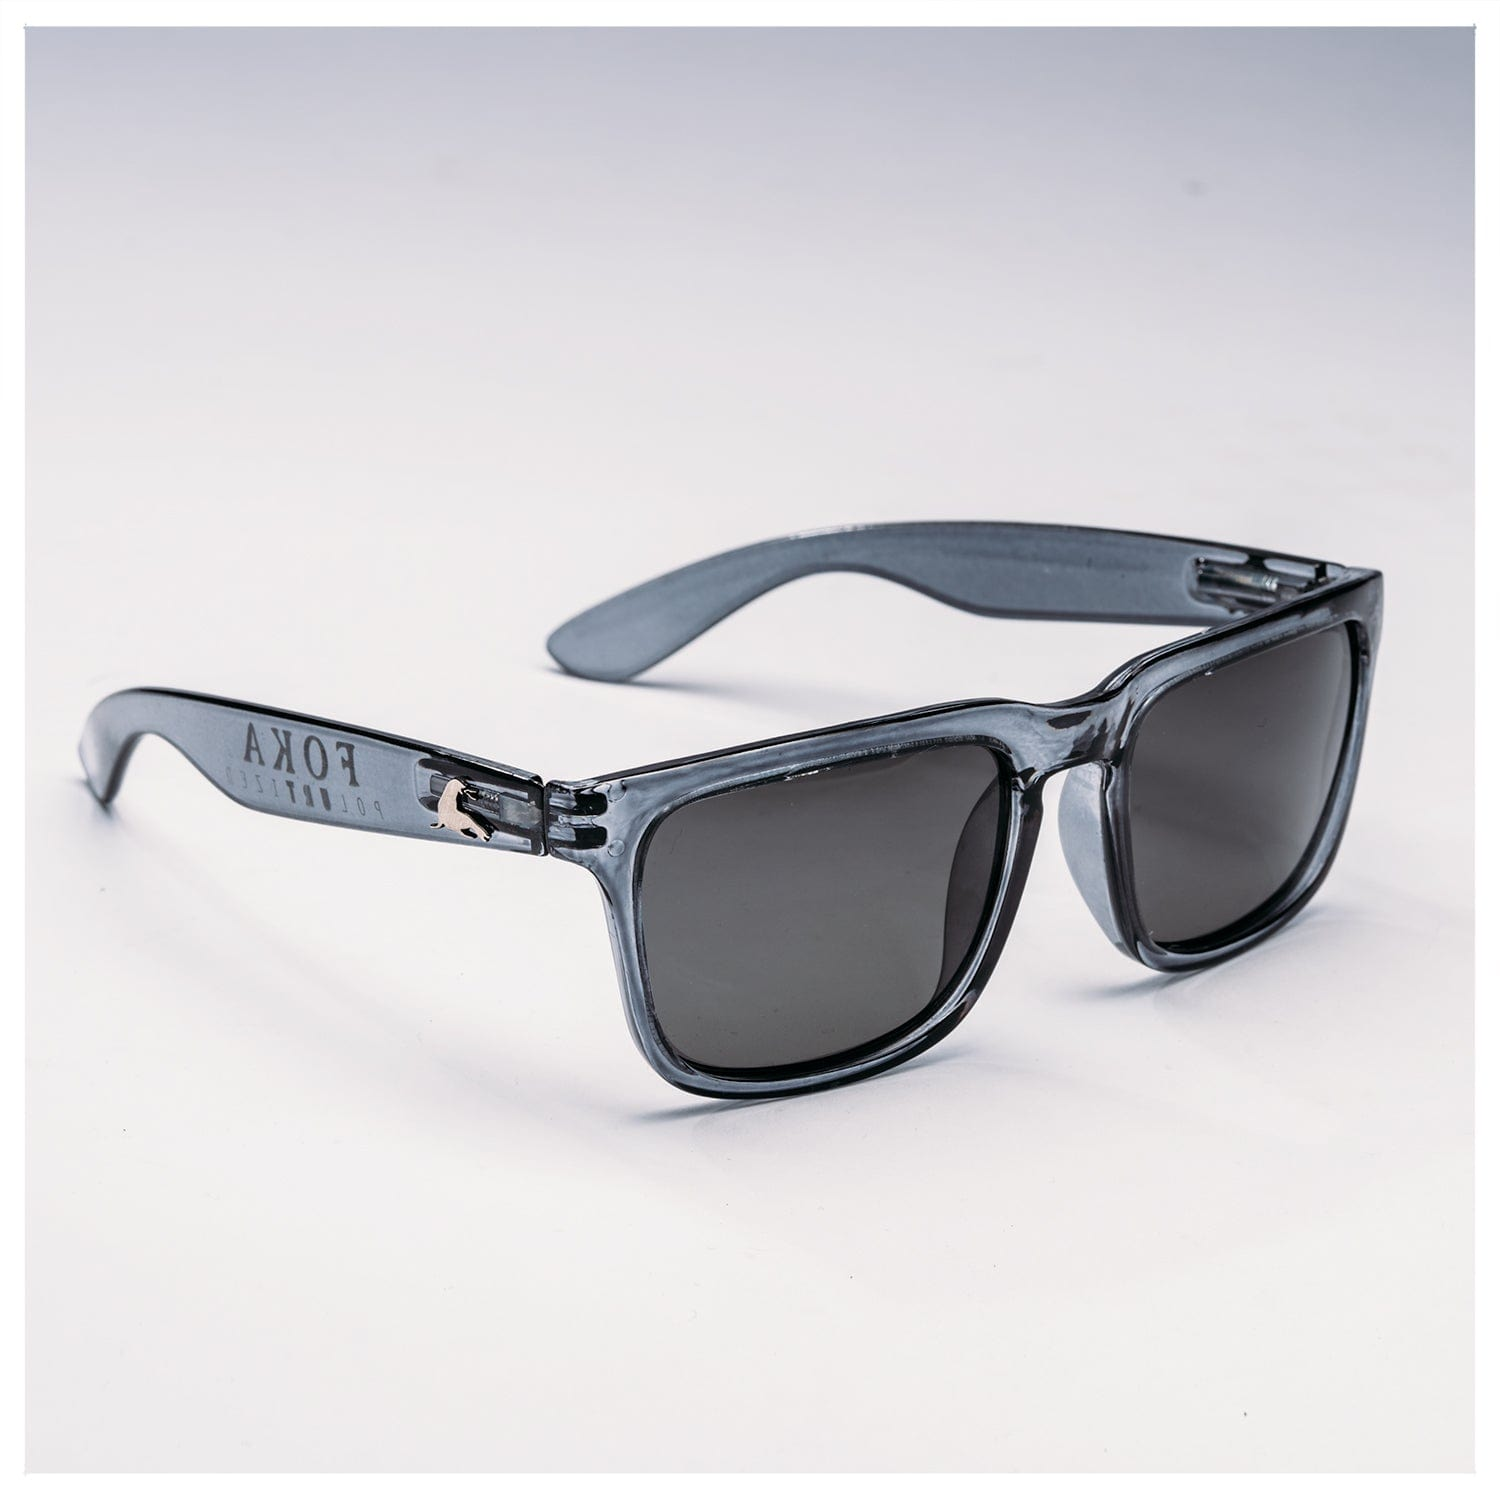 FOKA POLARIZED SHADES // 3 COLORS